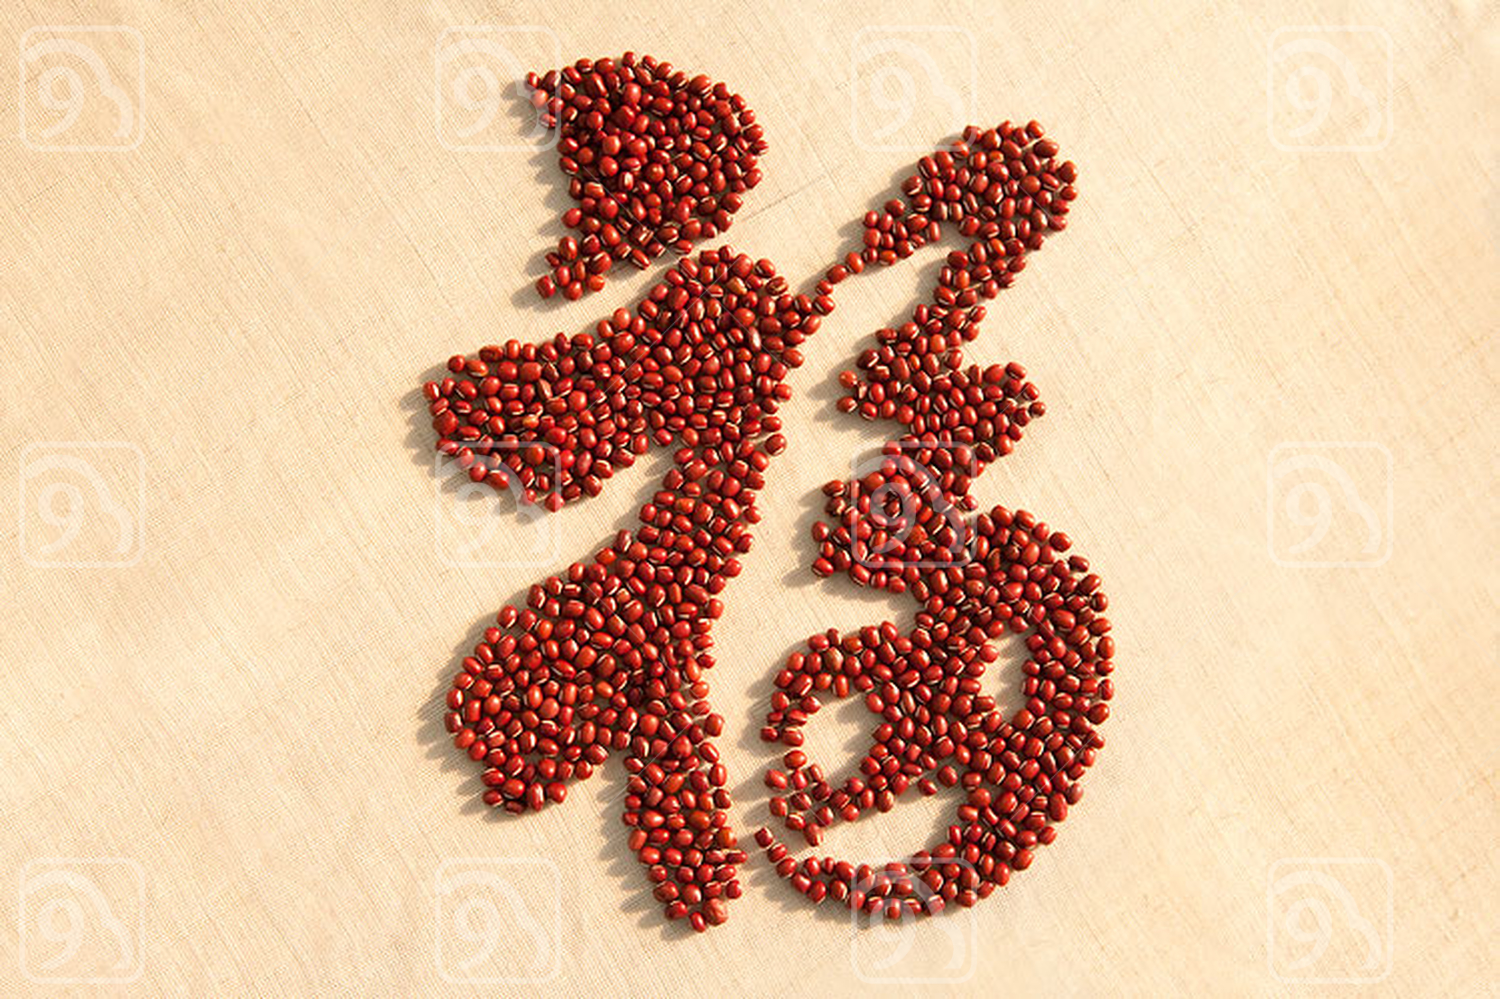 Chinese calligraphy made of red beans